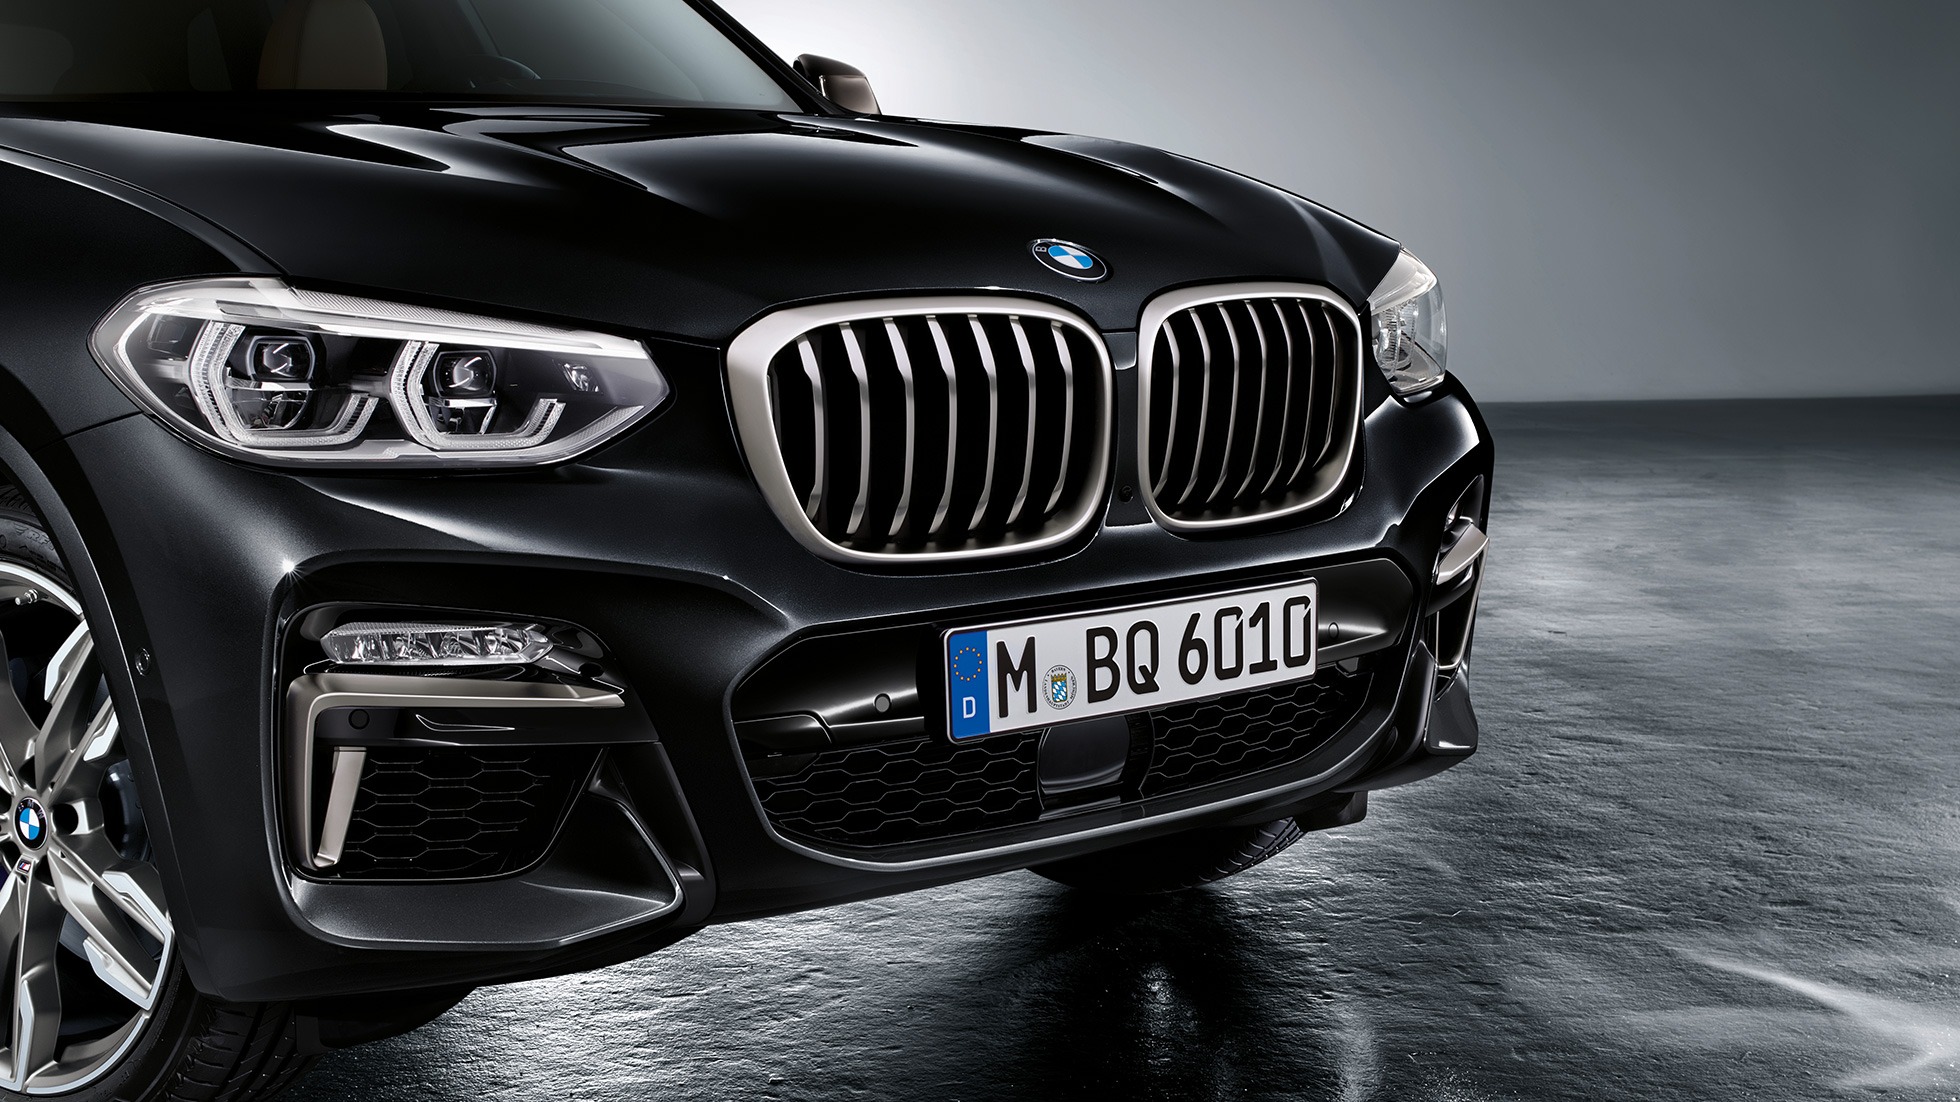 BMW X3 M40i in Black Sapphire metallic, exterior, front with design elements in Cerium Grey.